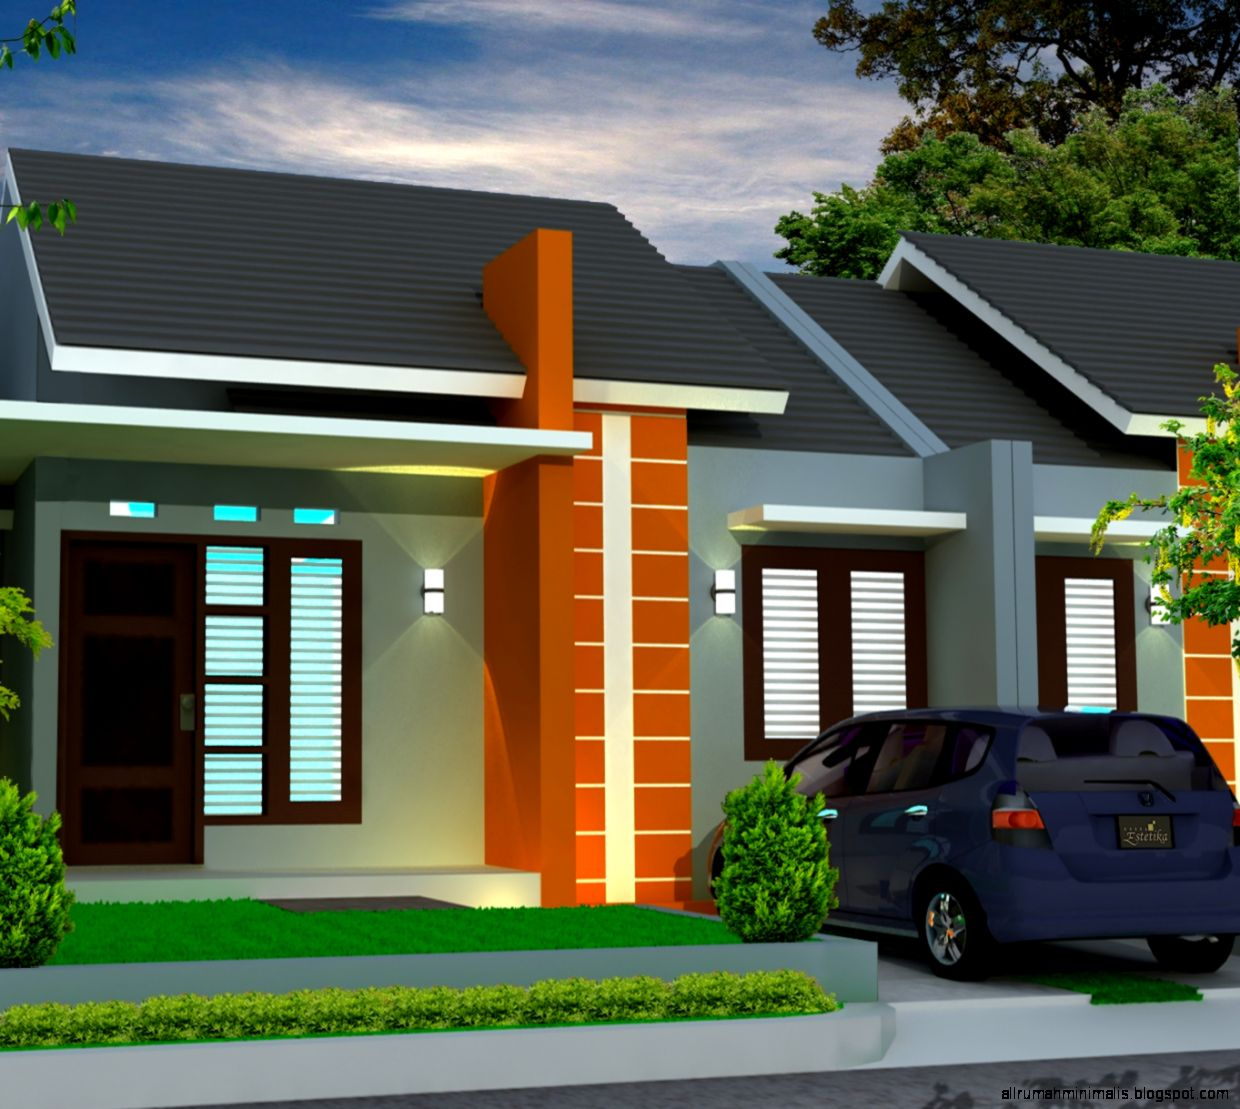 August 2015 Design Rumah Minimalis